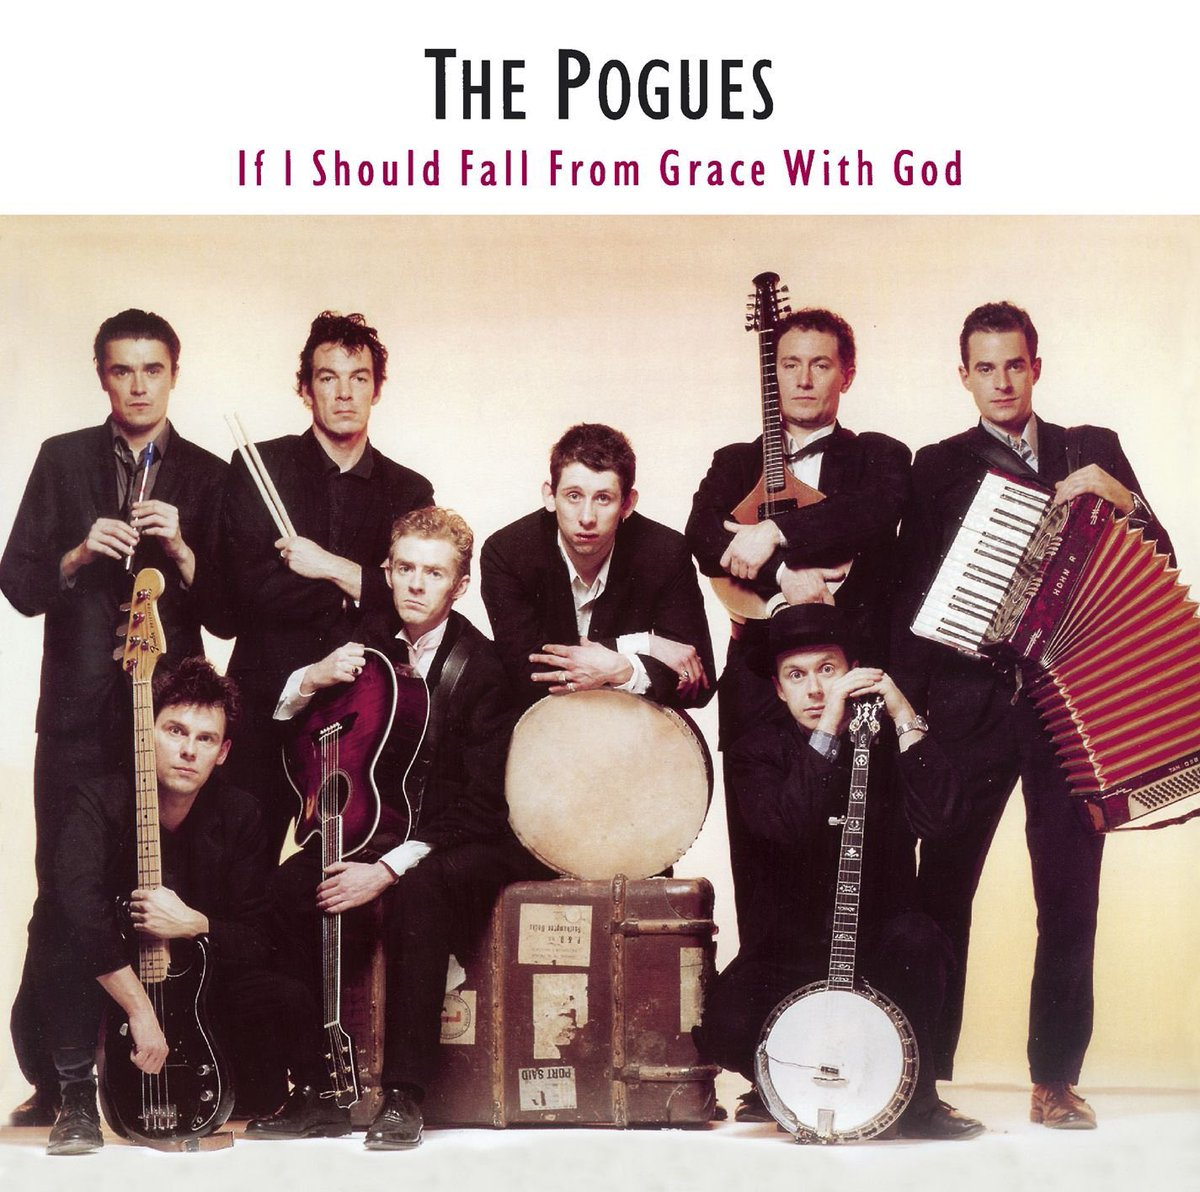 Saturday July 11th 11pm (U.K. time)  Join @spiderstacy and @James_Fearnley for a listening party to celebrate The Pogues' masterpiece If I Should Fall From Grace With God  Are you with us? https://t.co/mwWBYIc7jN